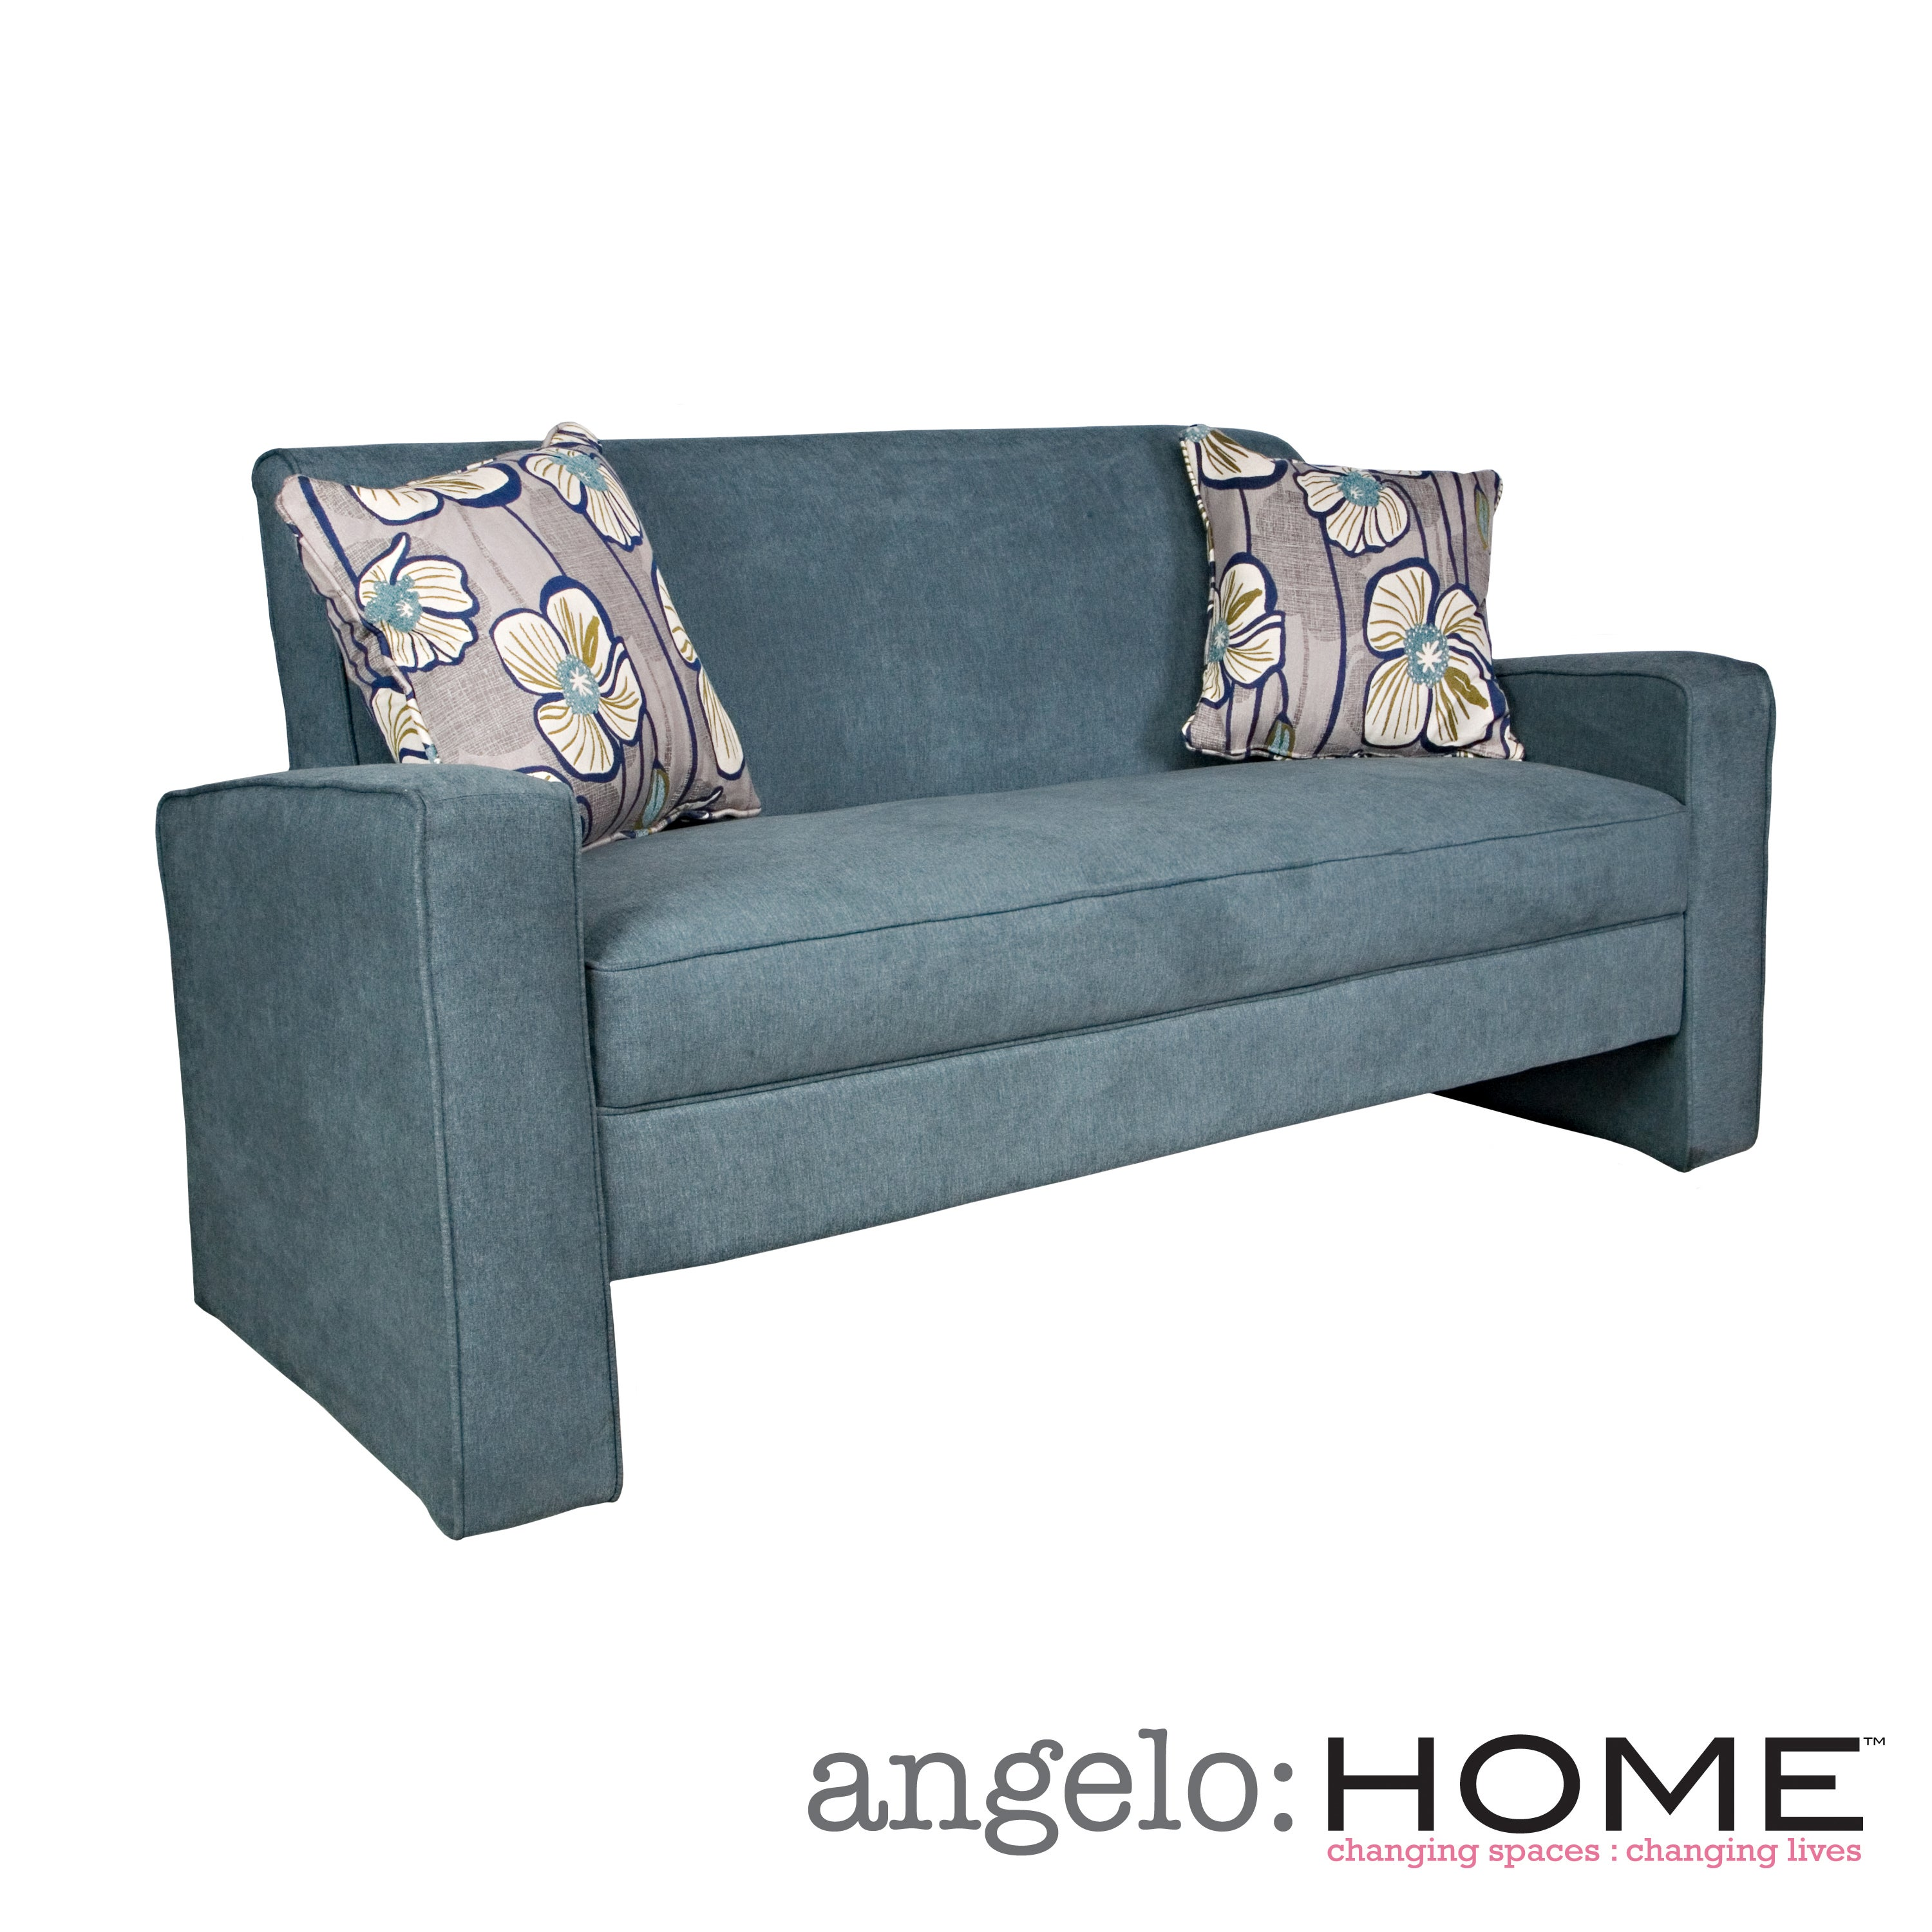 angelo:HOME Angie Parisian Blue Evening Velvet Sofa